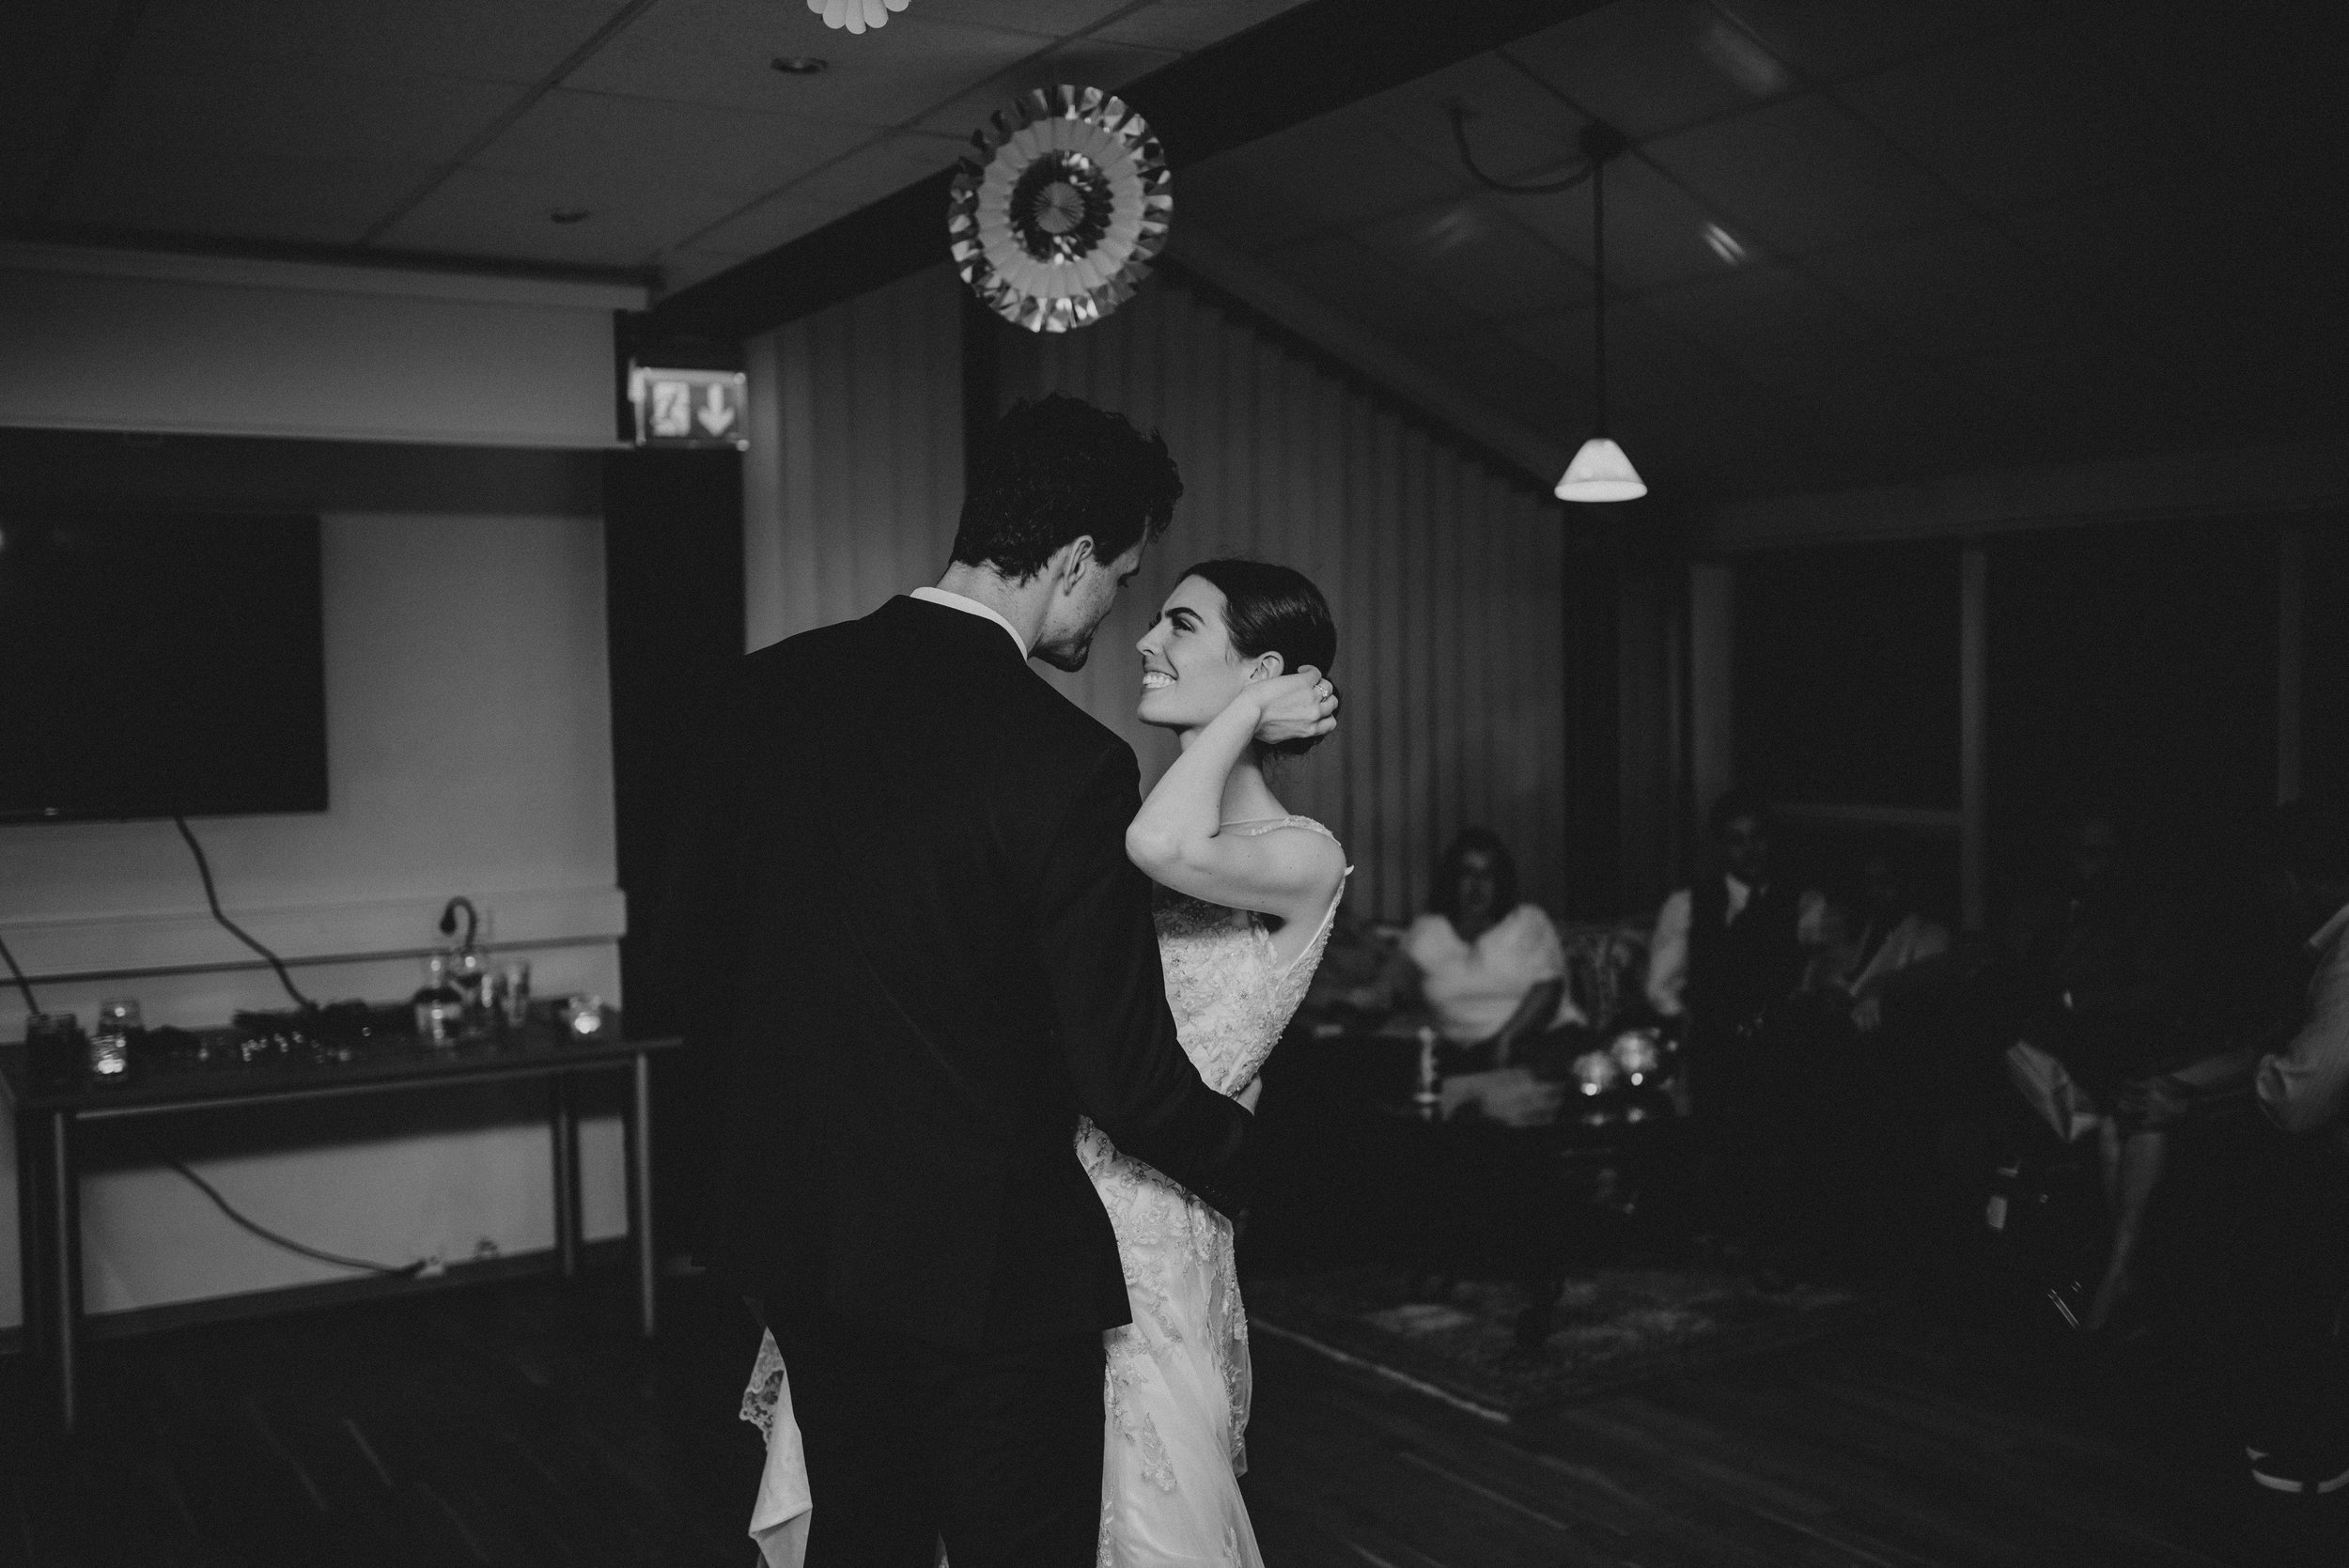 Our first dance was to  Harvest Moon  by Neil Young